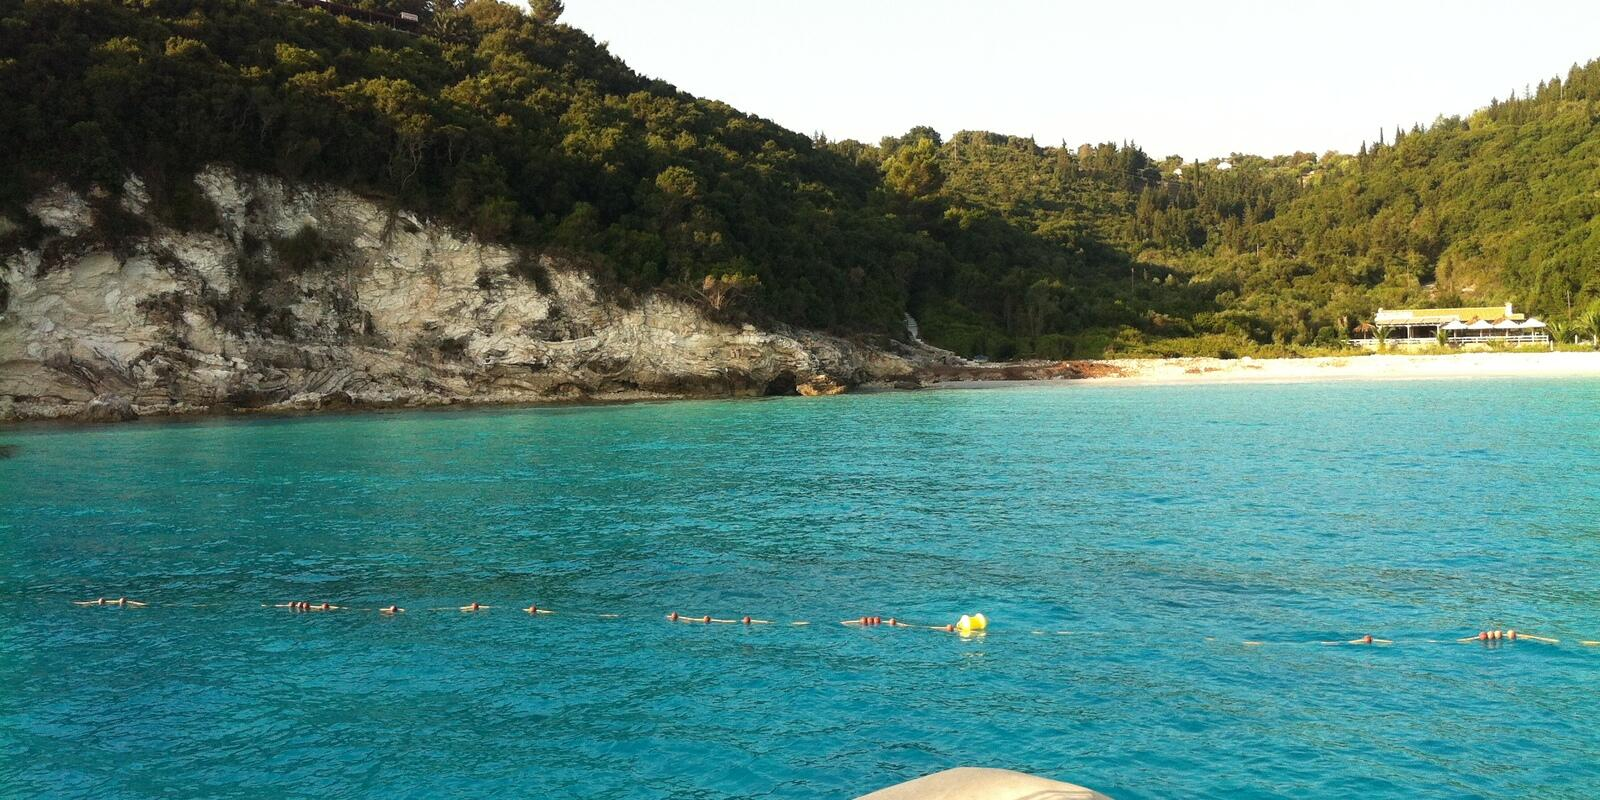 Sailing week In crystal clear waters and surrounded by nature